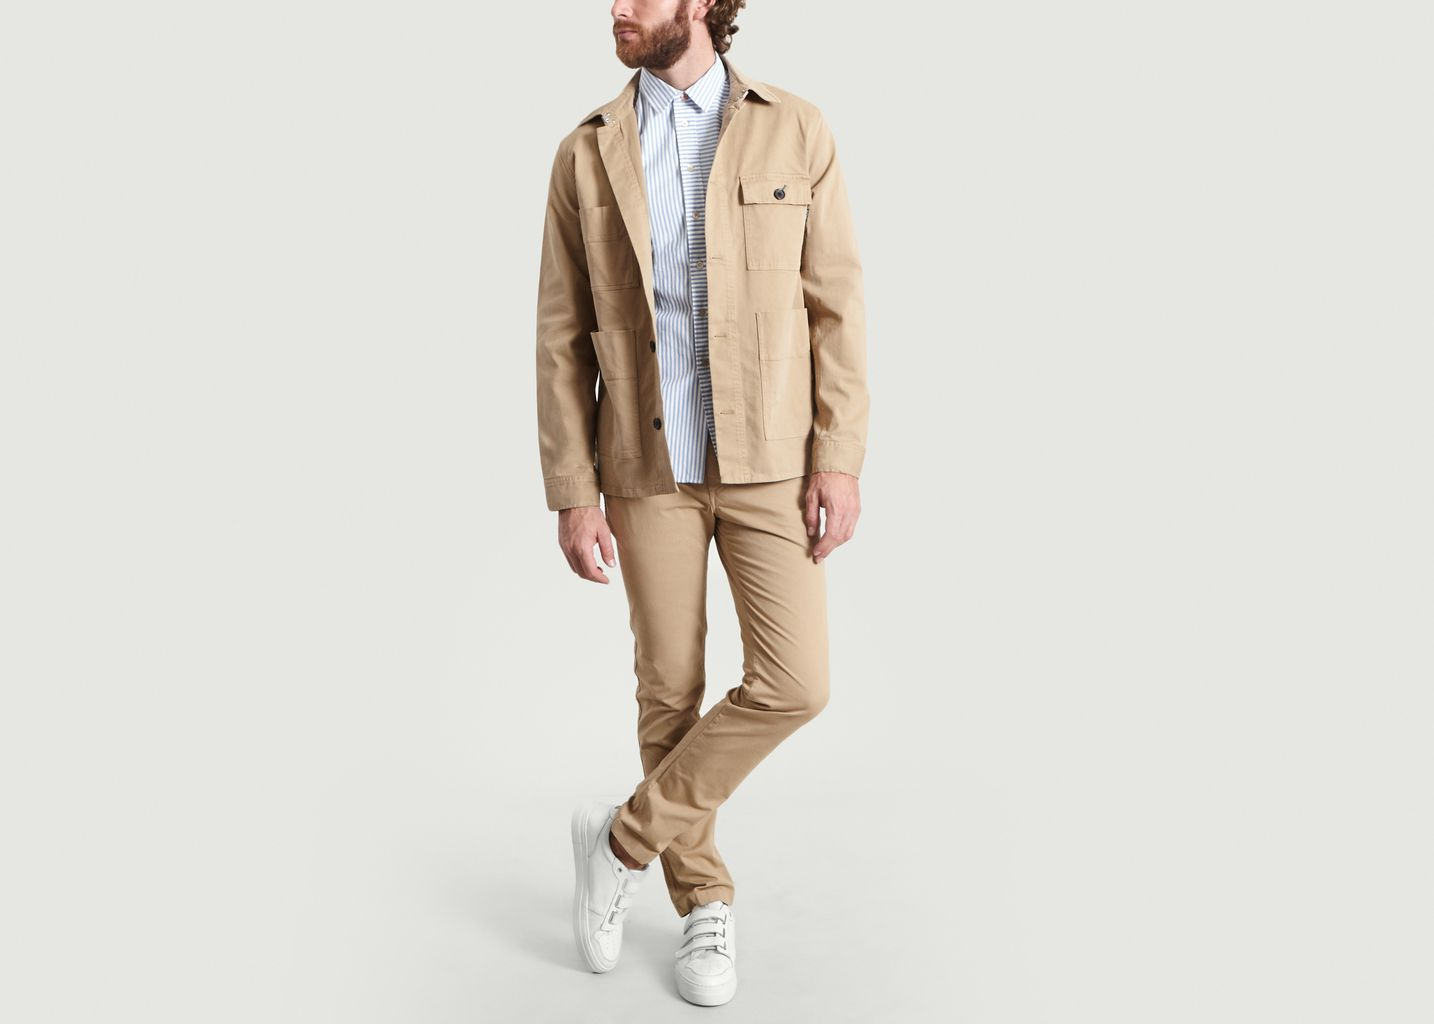 Veste Worker - PS by PAUL SMITH